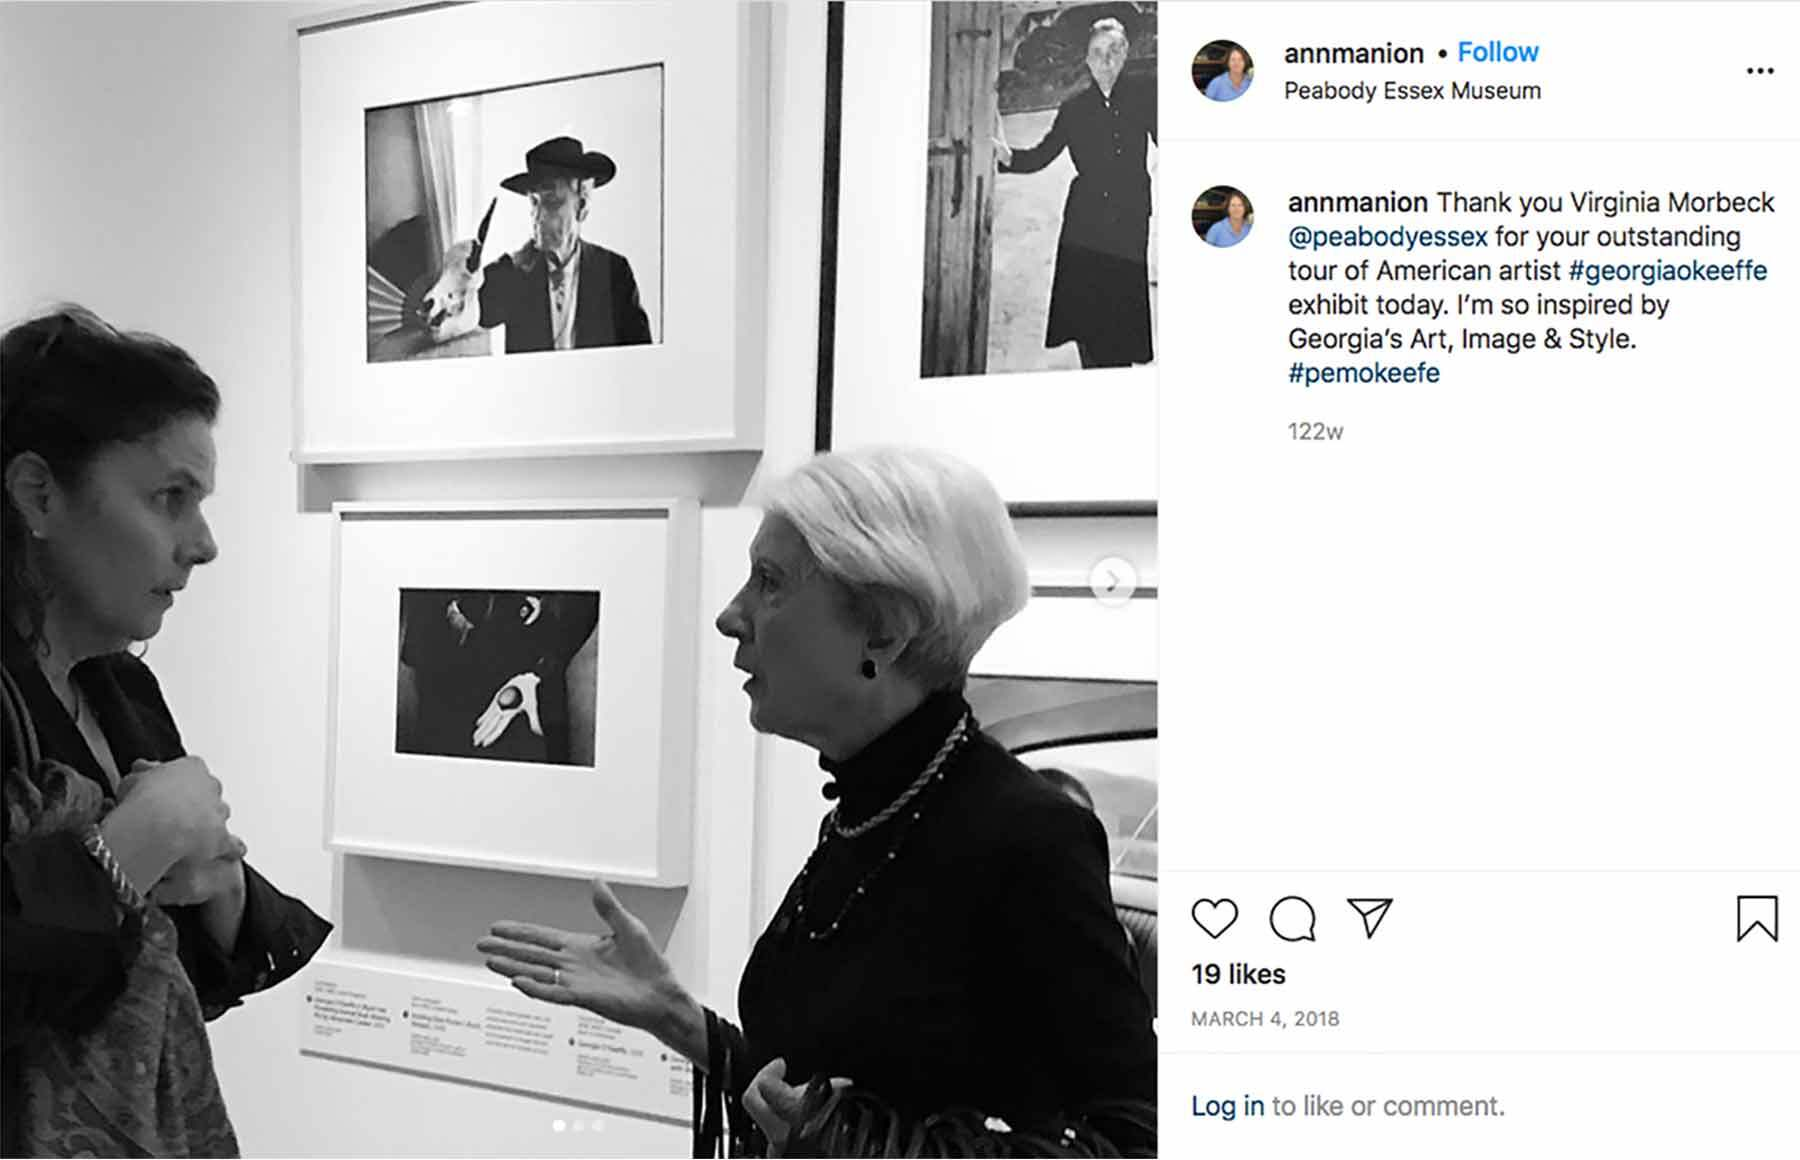 An instagram post of two women talking in a gallery space with Georgia O'Keeffe photographs on the walls